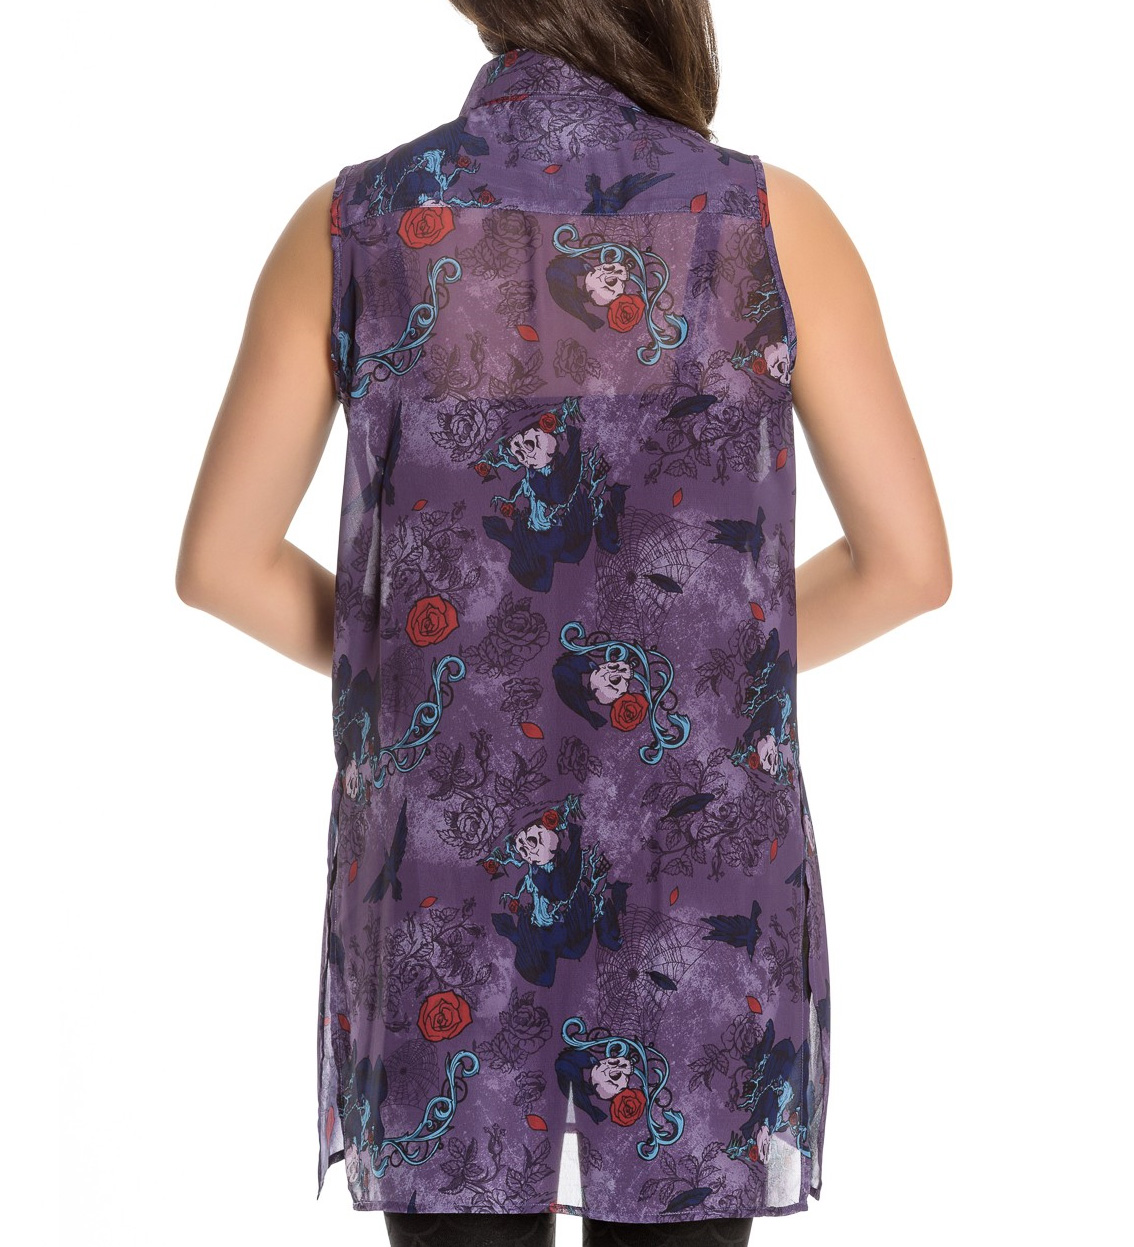 Hell-Bunny-Shirt-Top-Goth-Punk-Roses-Skulls-RAVEN-Purple-Blouse-All-Sizes thumbnail 25